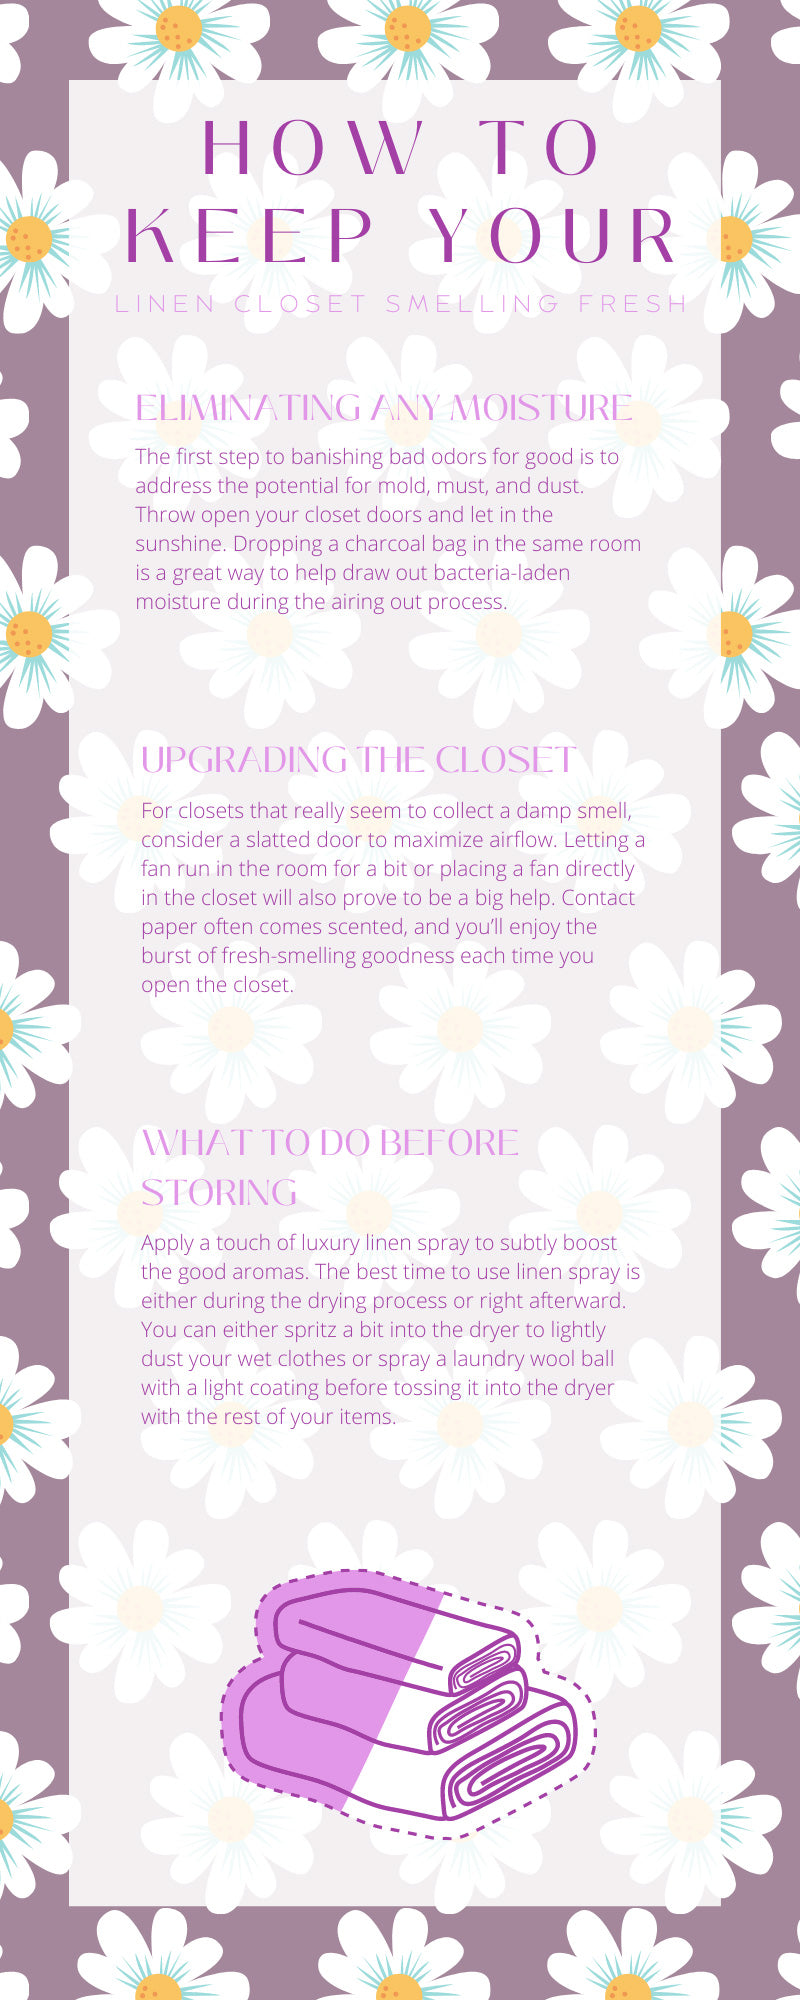 How To Keep Your Linen Closet Smelling Fresh